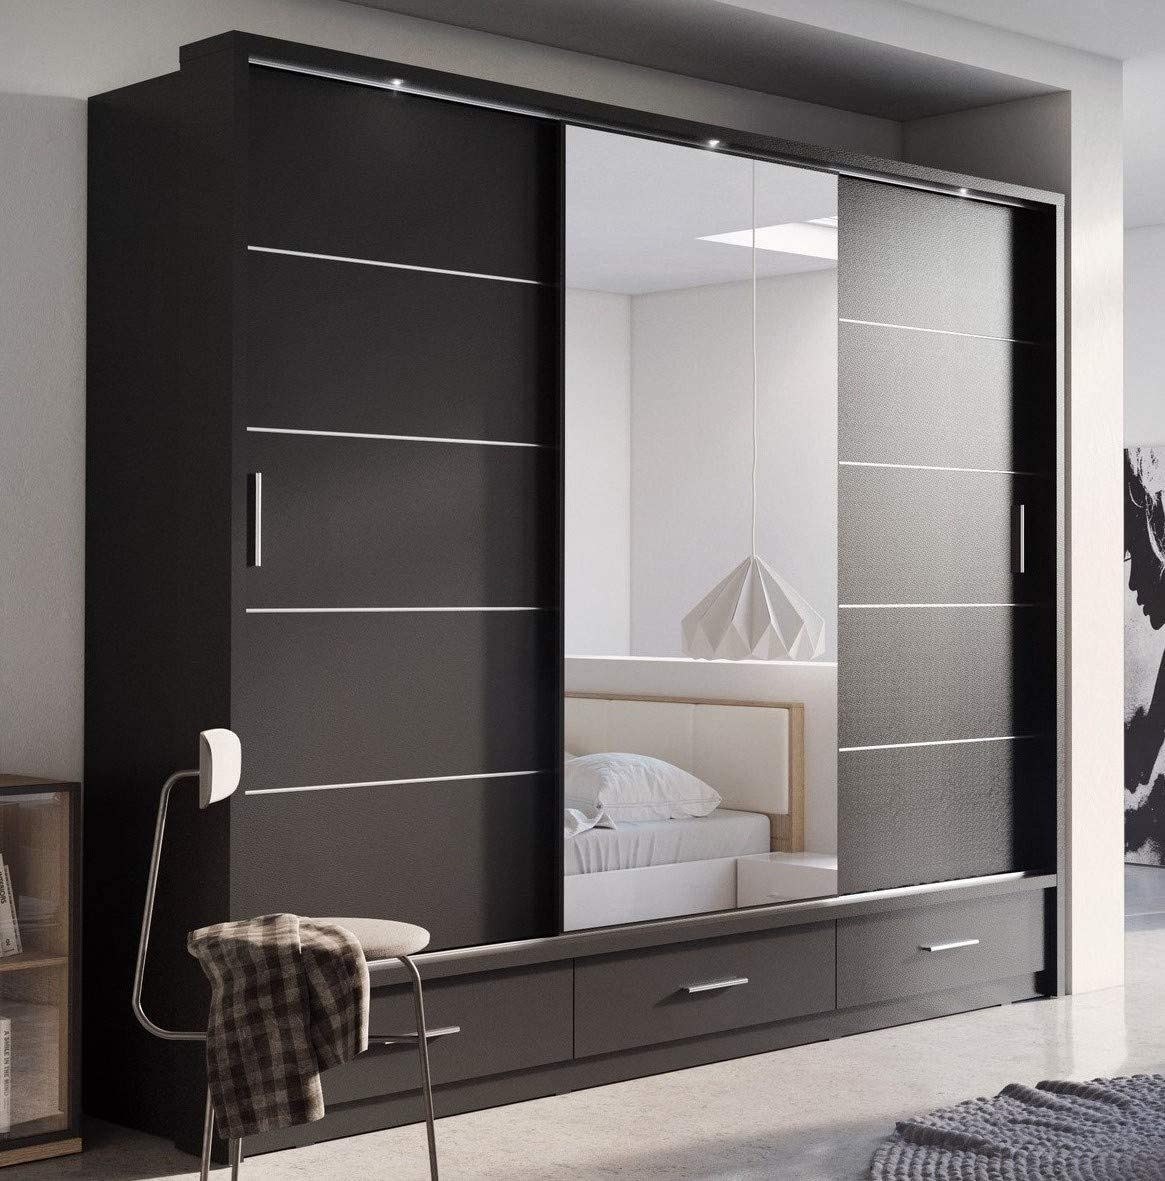 Brand New Modern Bedroom Mirror Sliding Door Wardrobe Arti 1 In Matt Black 250cm Sold By Arthauss Amazon Co Uk Kitchen Home